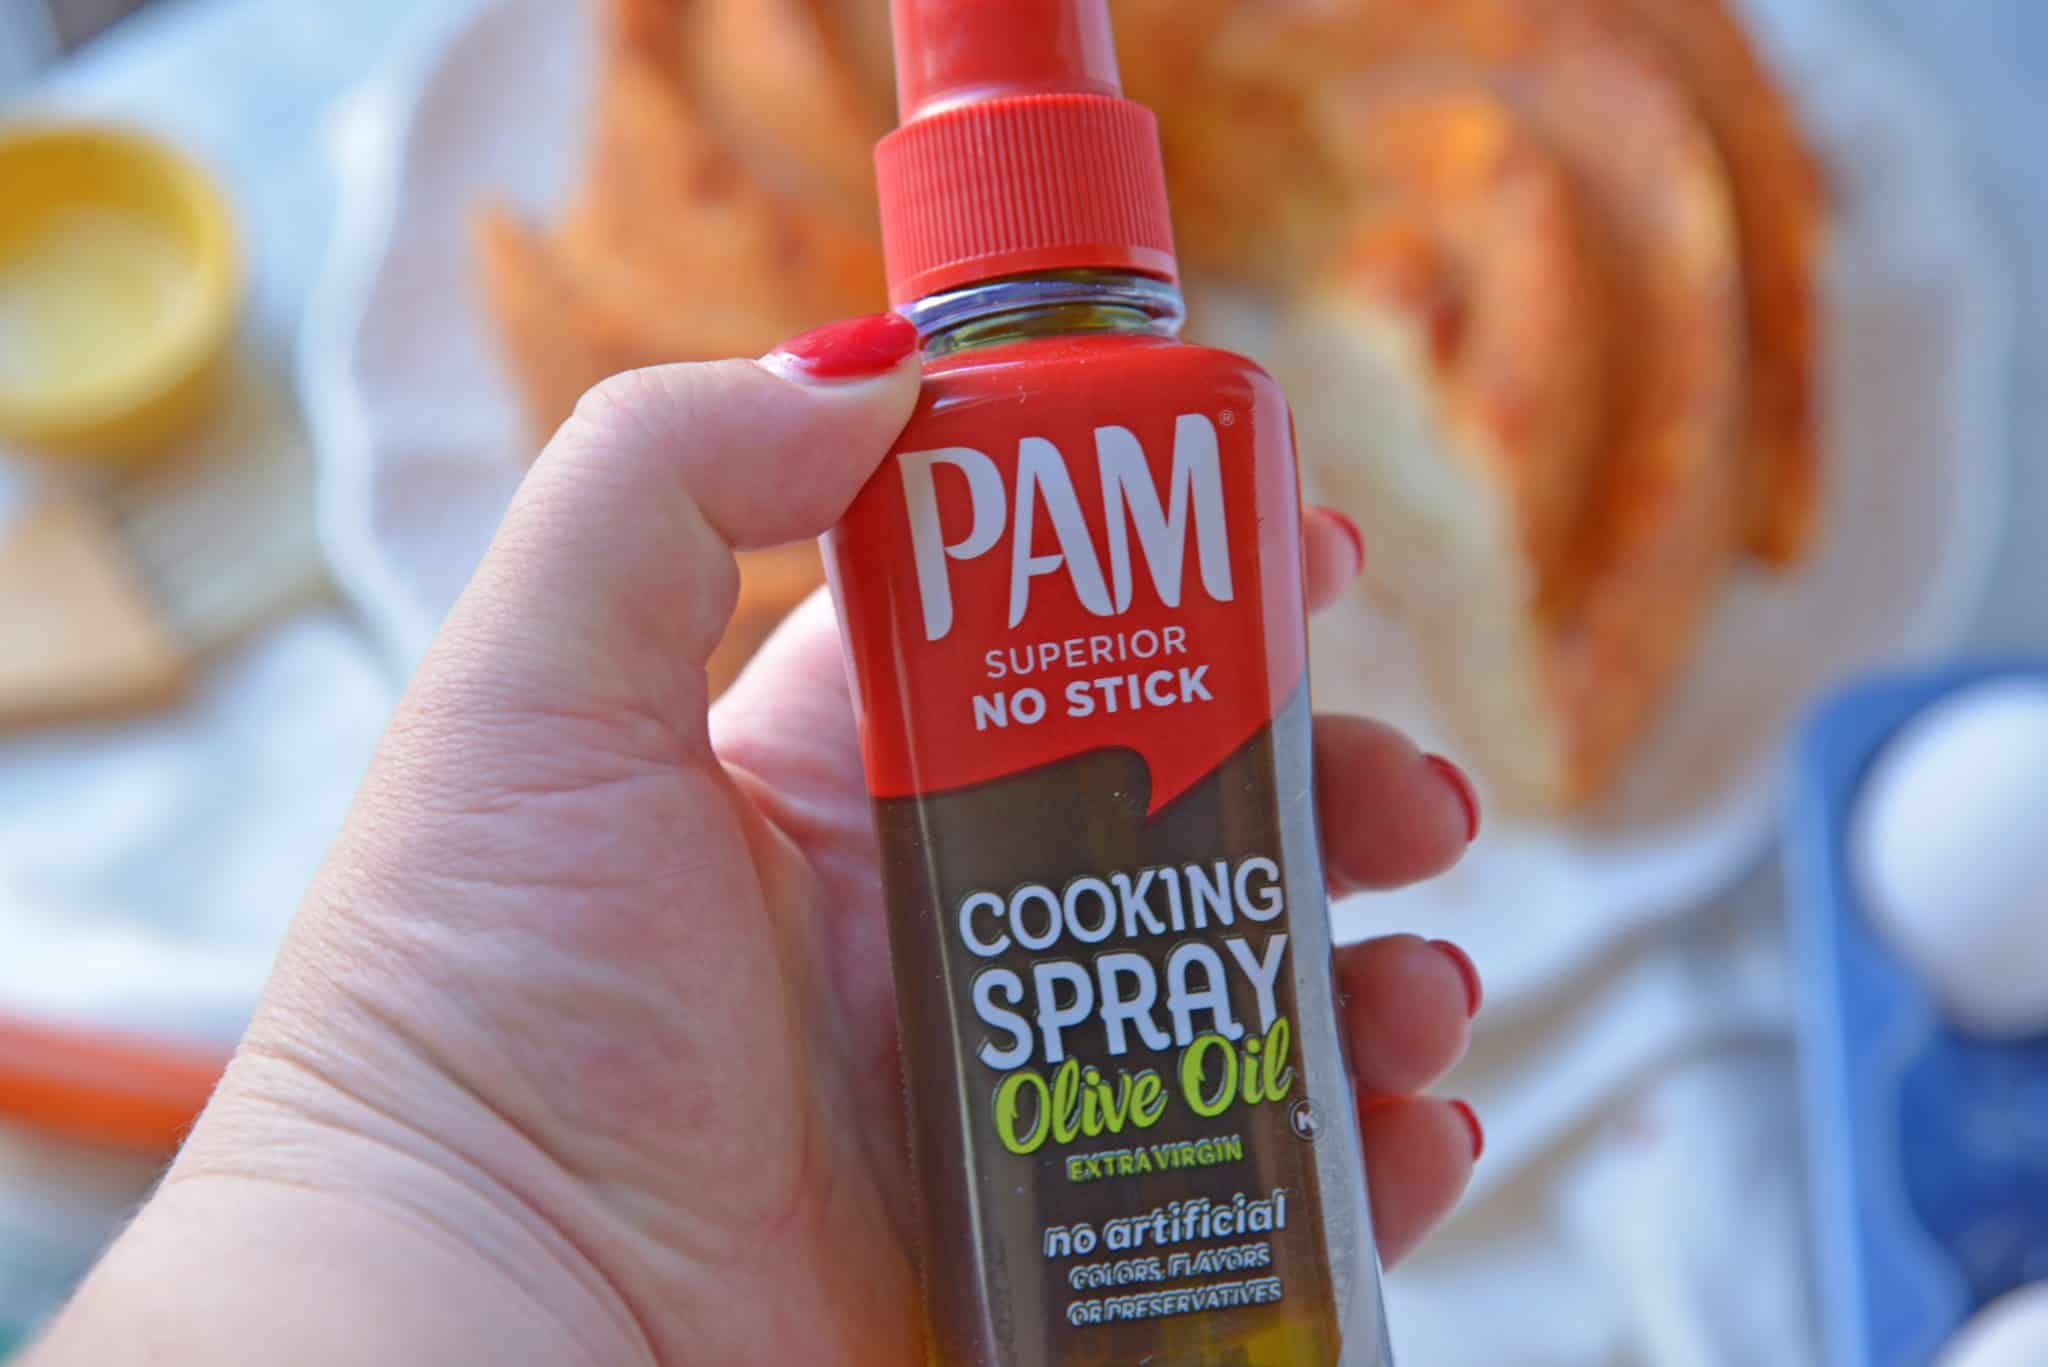 A close up of a bottle of PAM